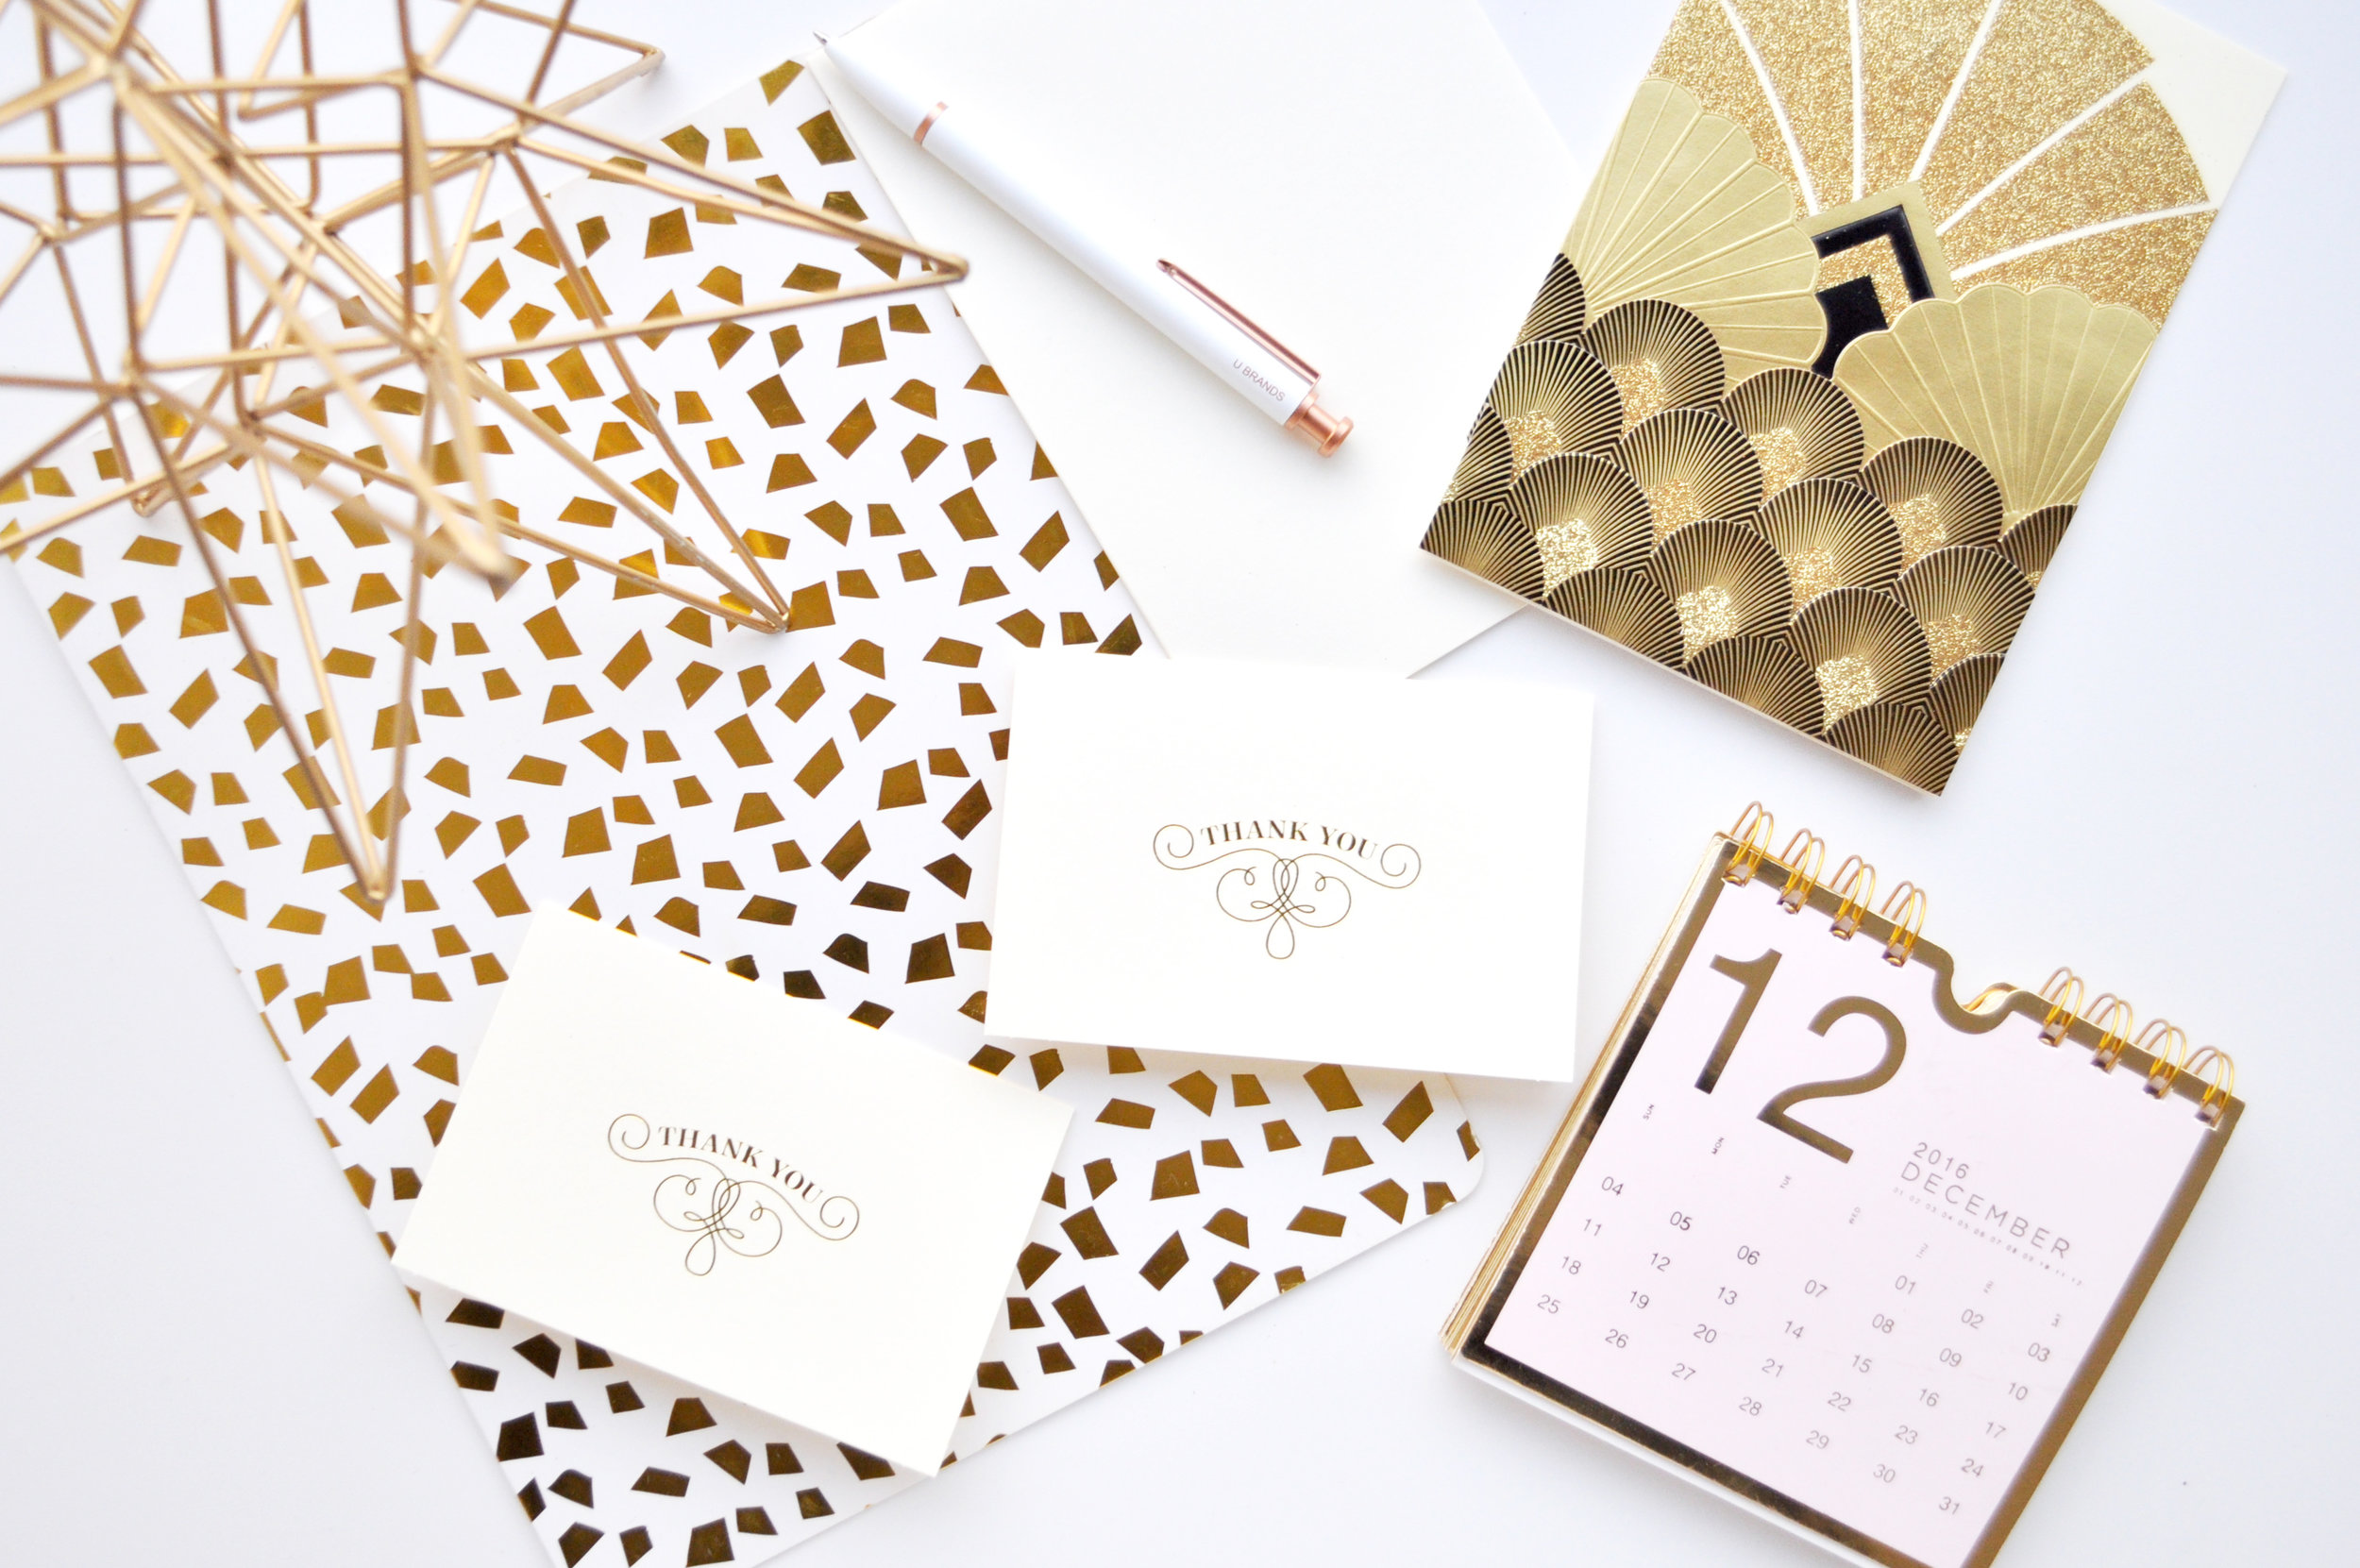 New Years cards from Papyrus.